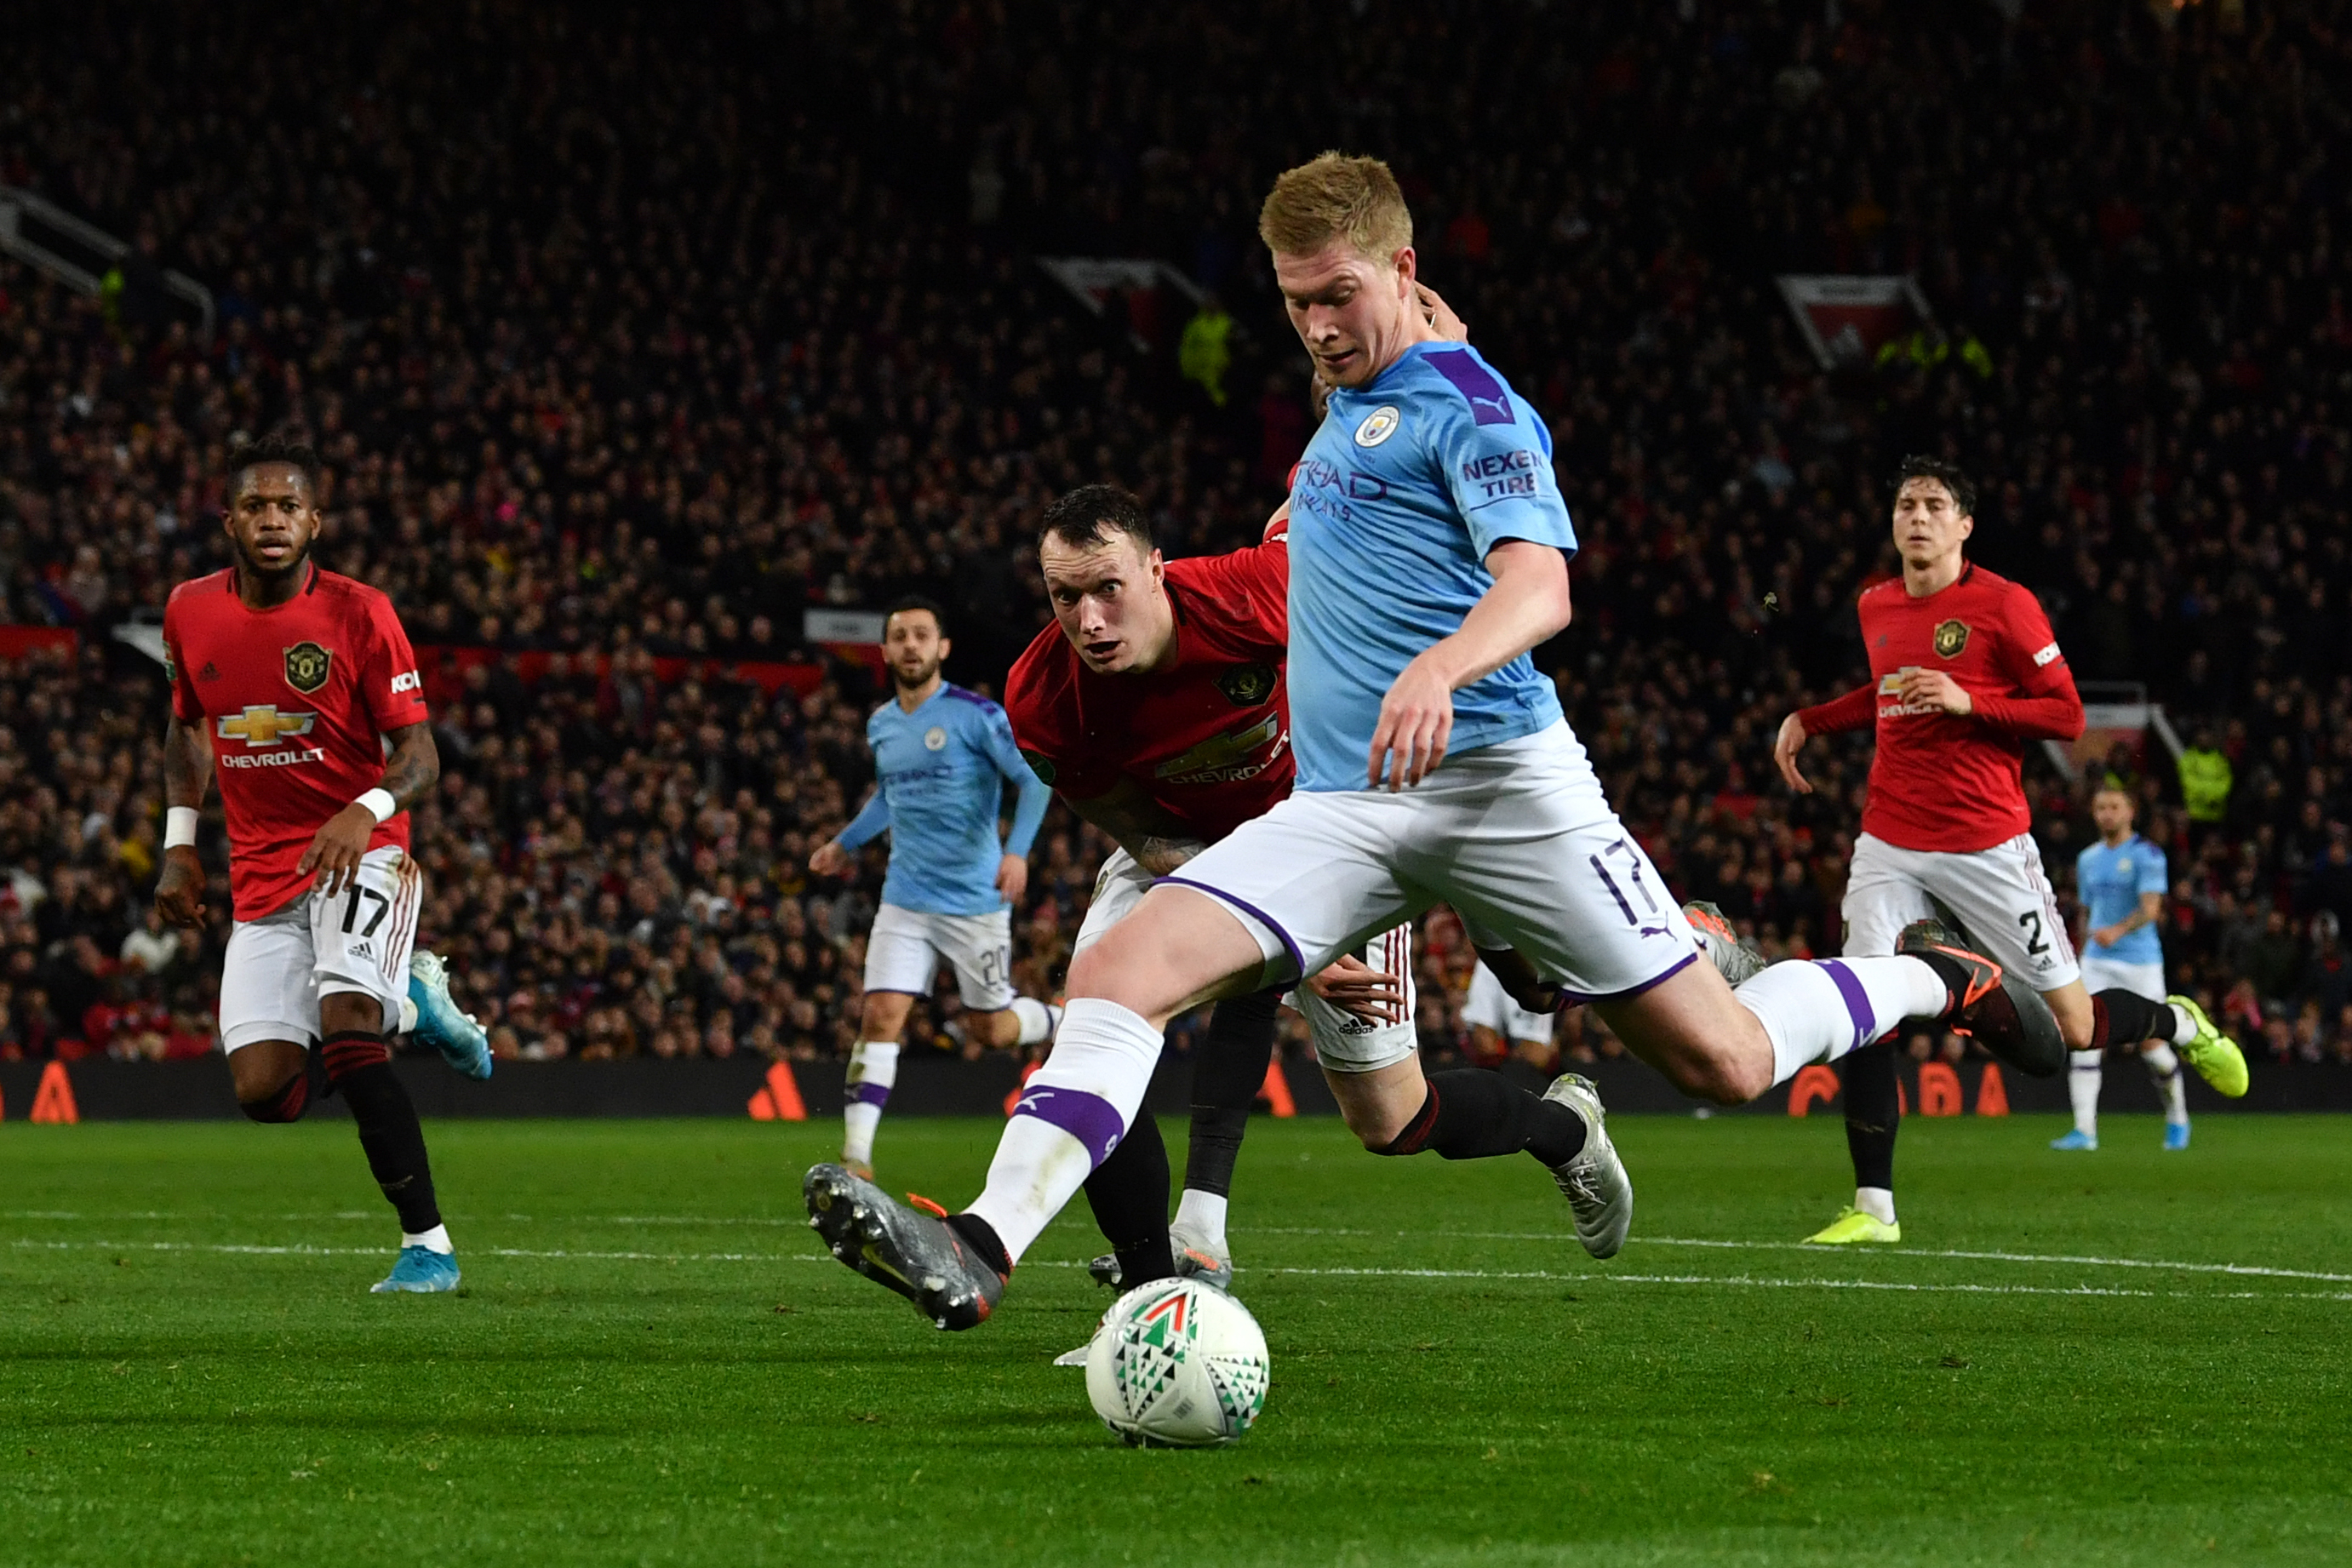 Kevin De Bruyne against Manchester United